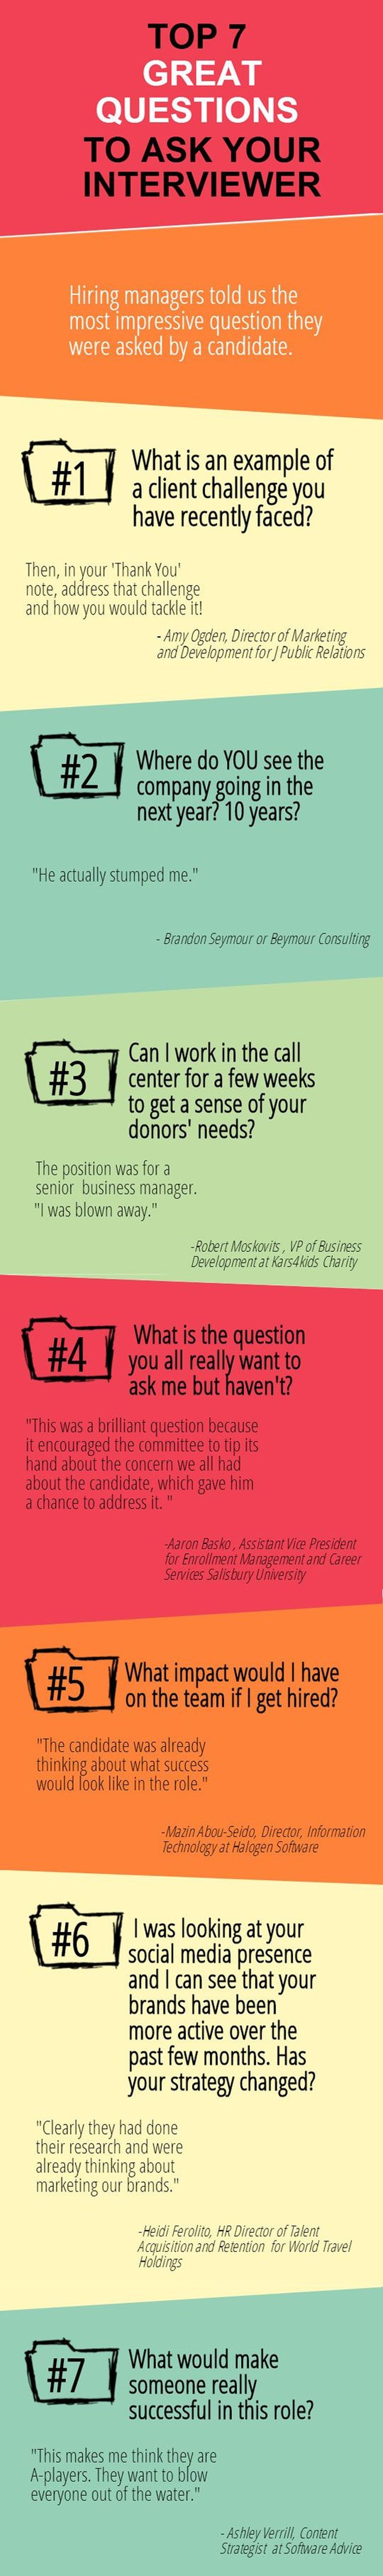 asking questions during the job interview process signals to